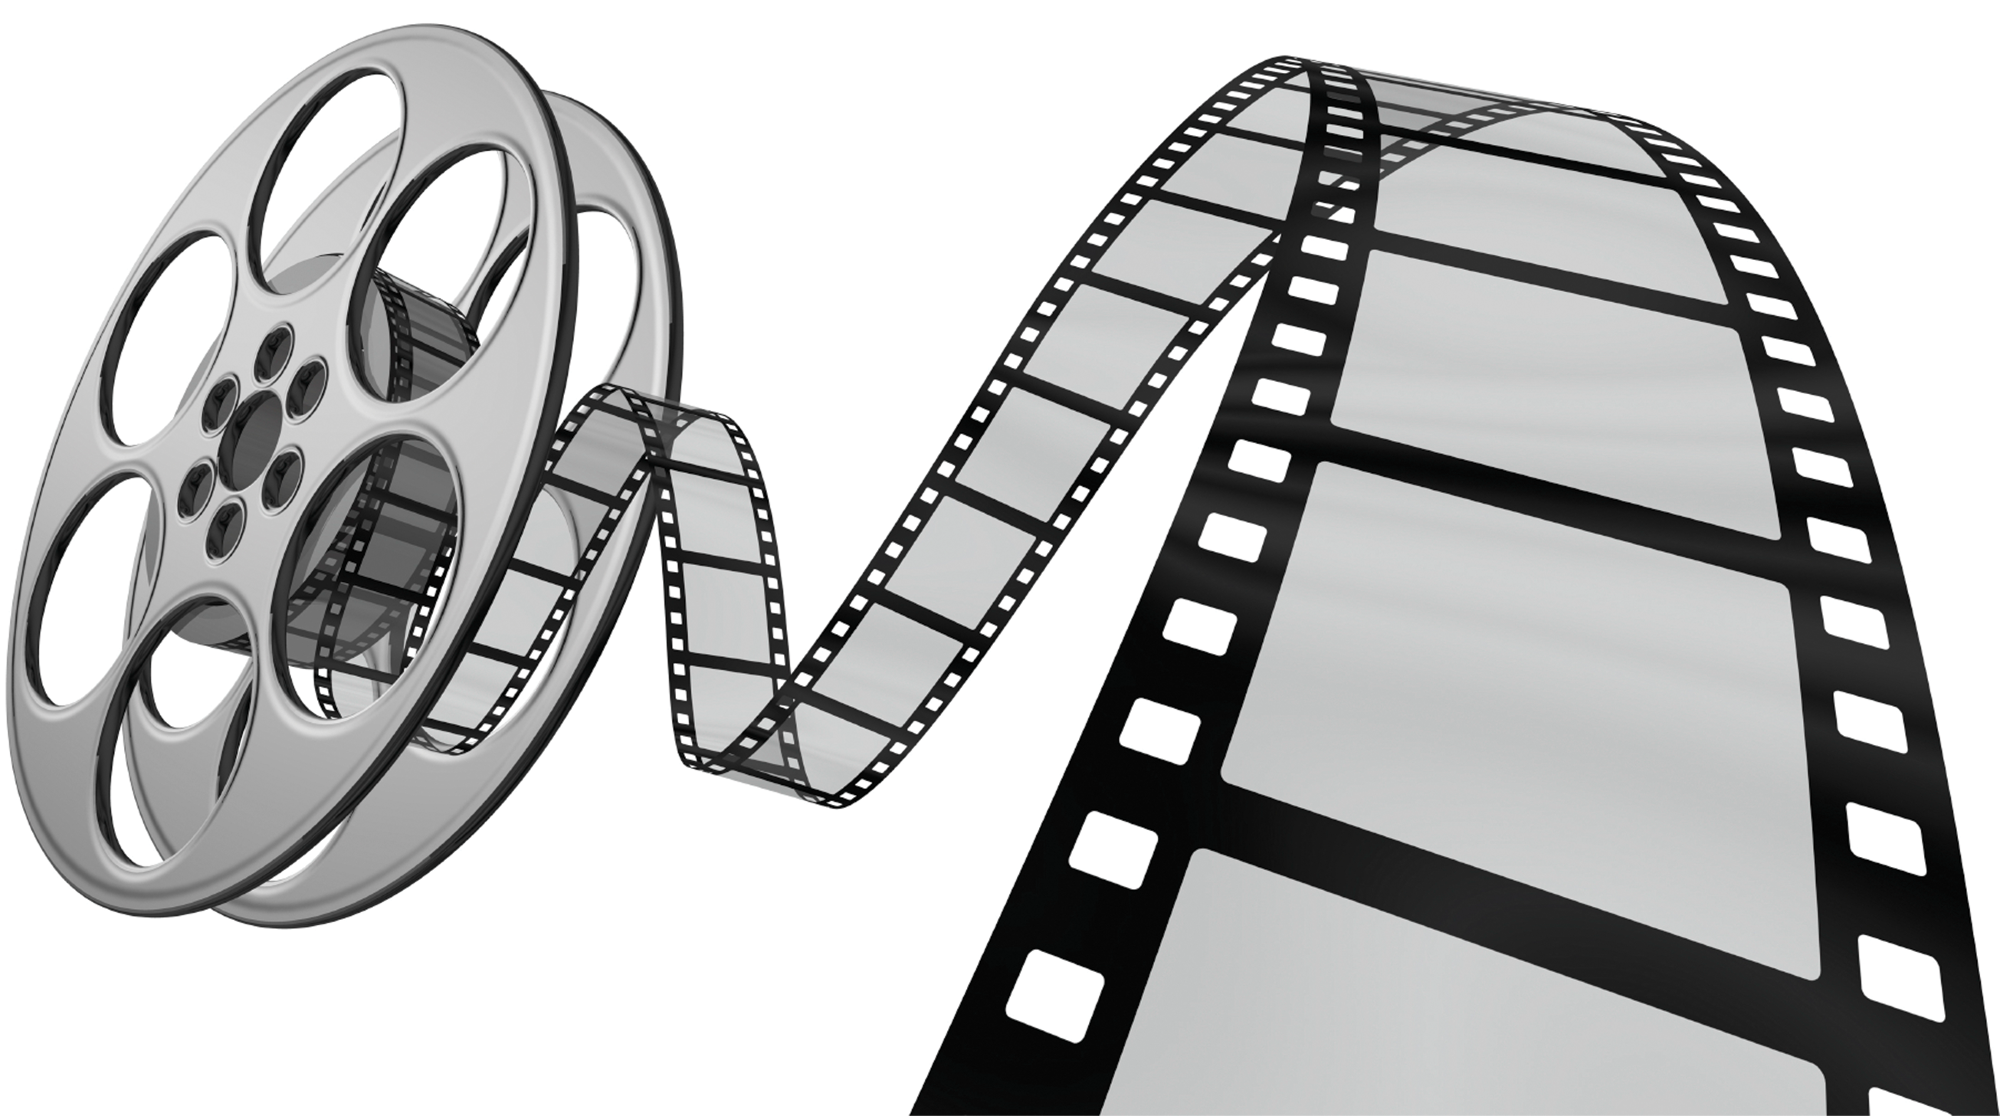 Black and white illustration of movie film reel